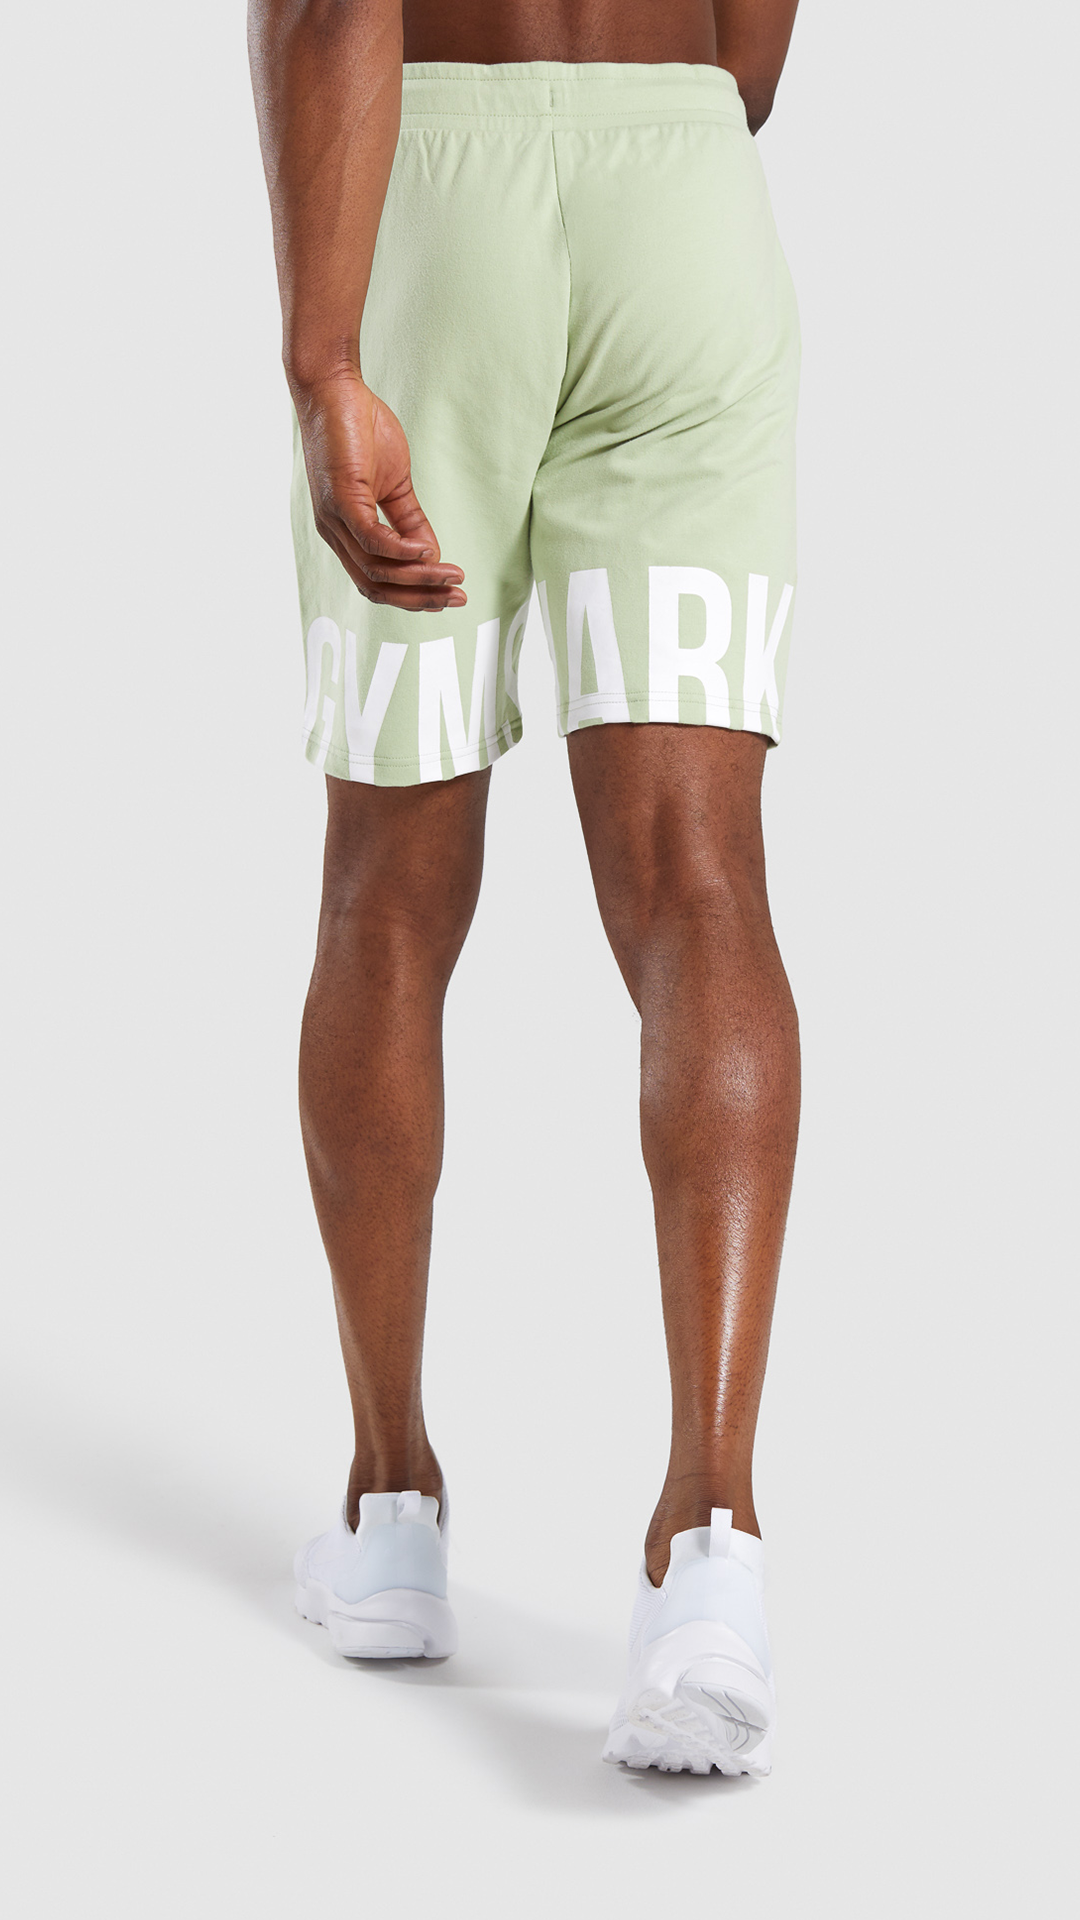 4e0b5110b8df4 The Bold Shorts, Chalk Green. #Gymshark #Gym #Sweat #Train #Perform  #Seamless #Exercise #Strength #Strong #Power #Fitness #OutfitInspiration  #Menswear ...